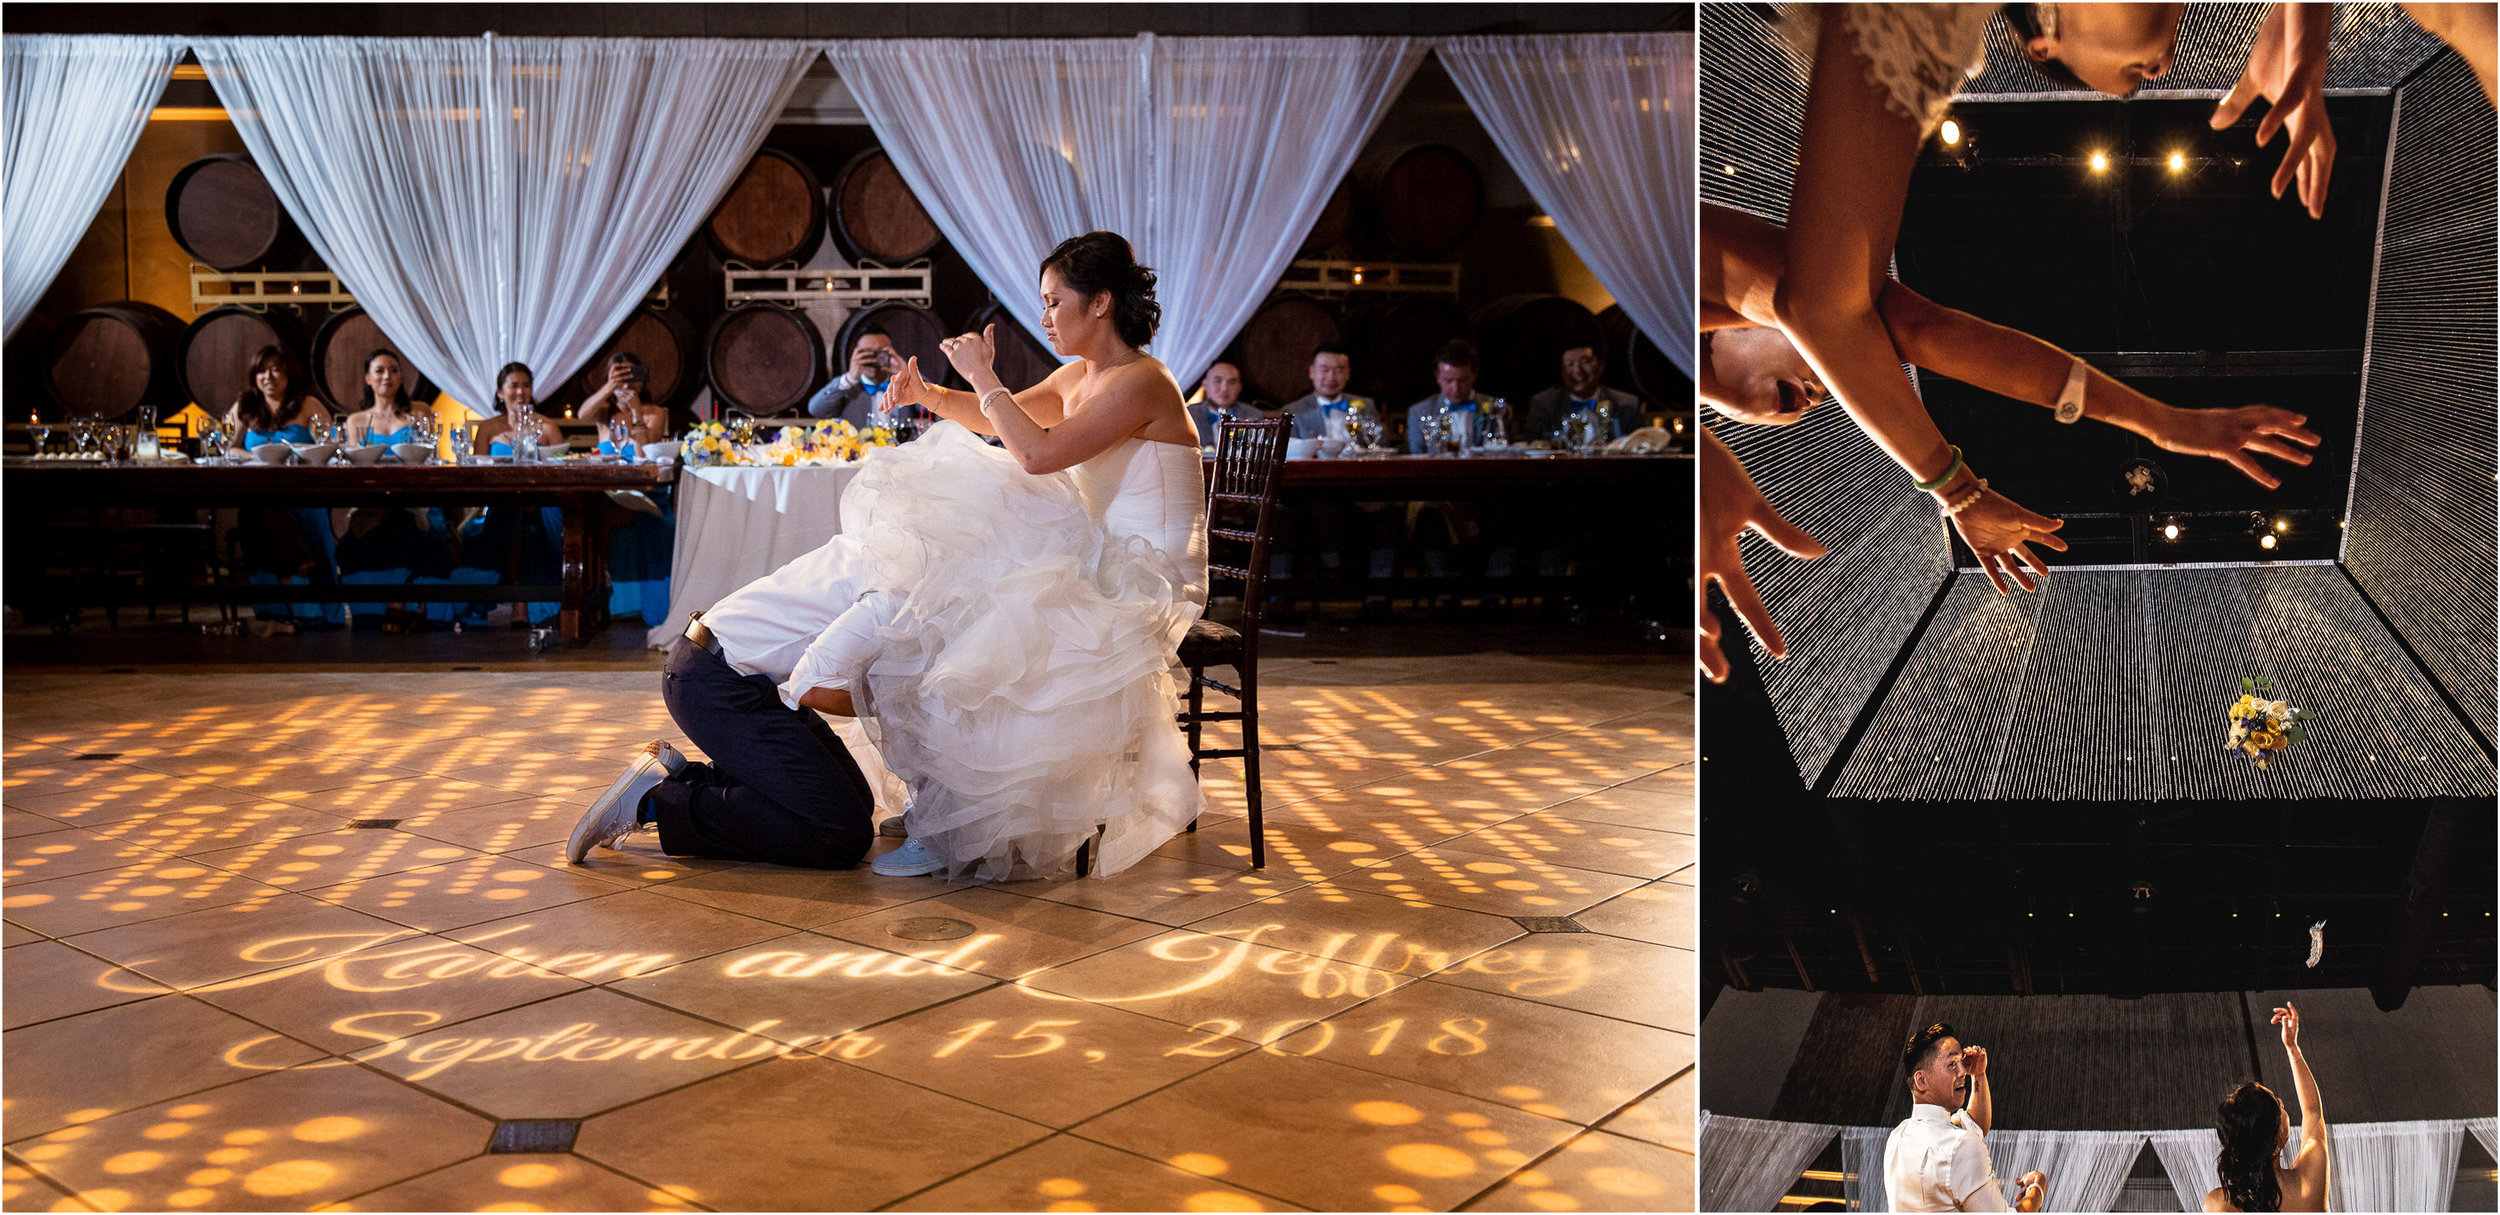 Karen and Jeff went with an untraditional toss by tossing their garter and bouquet at the same time!